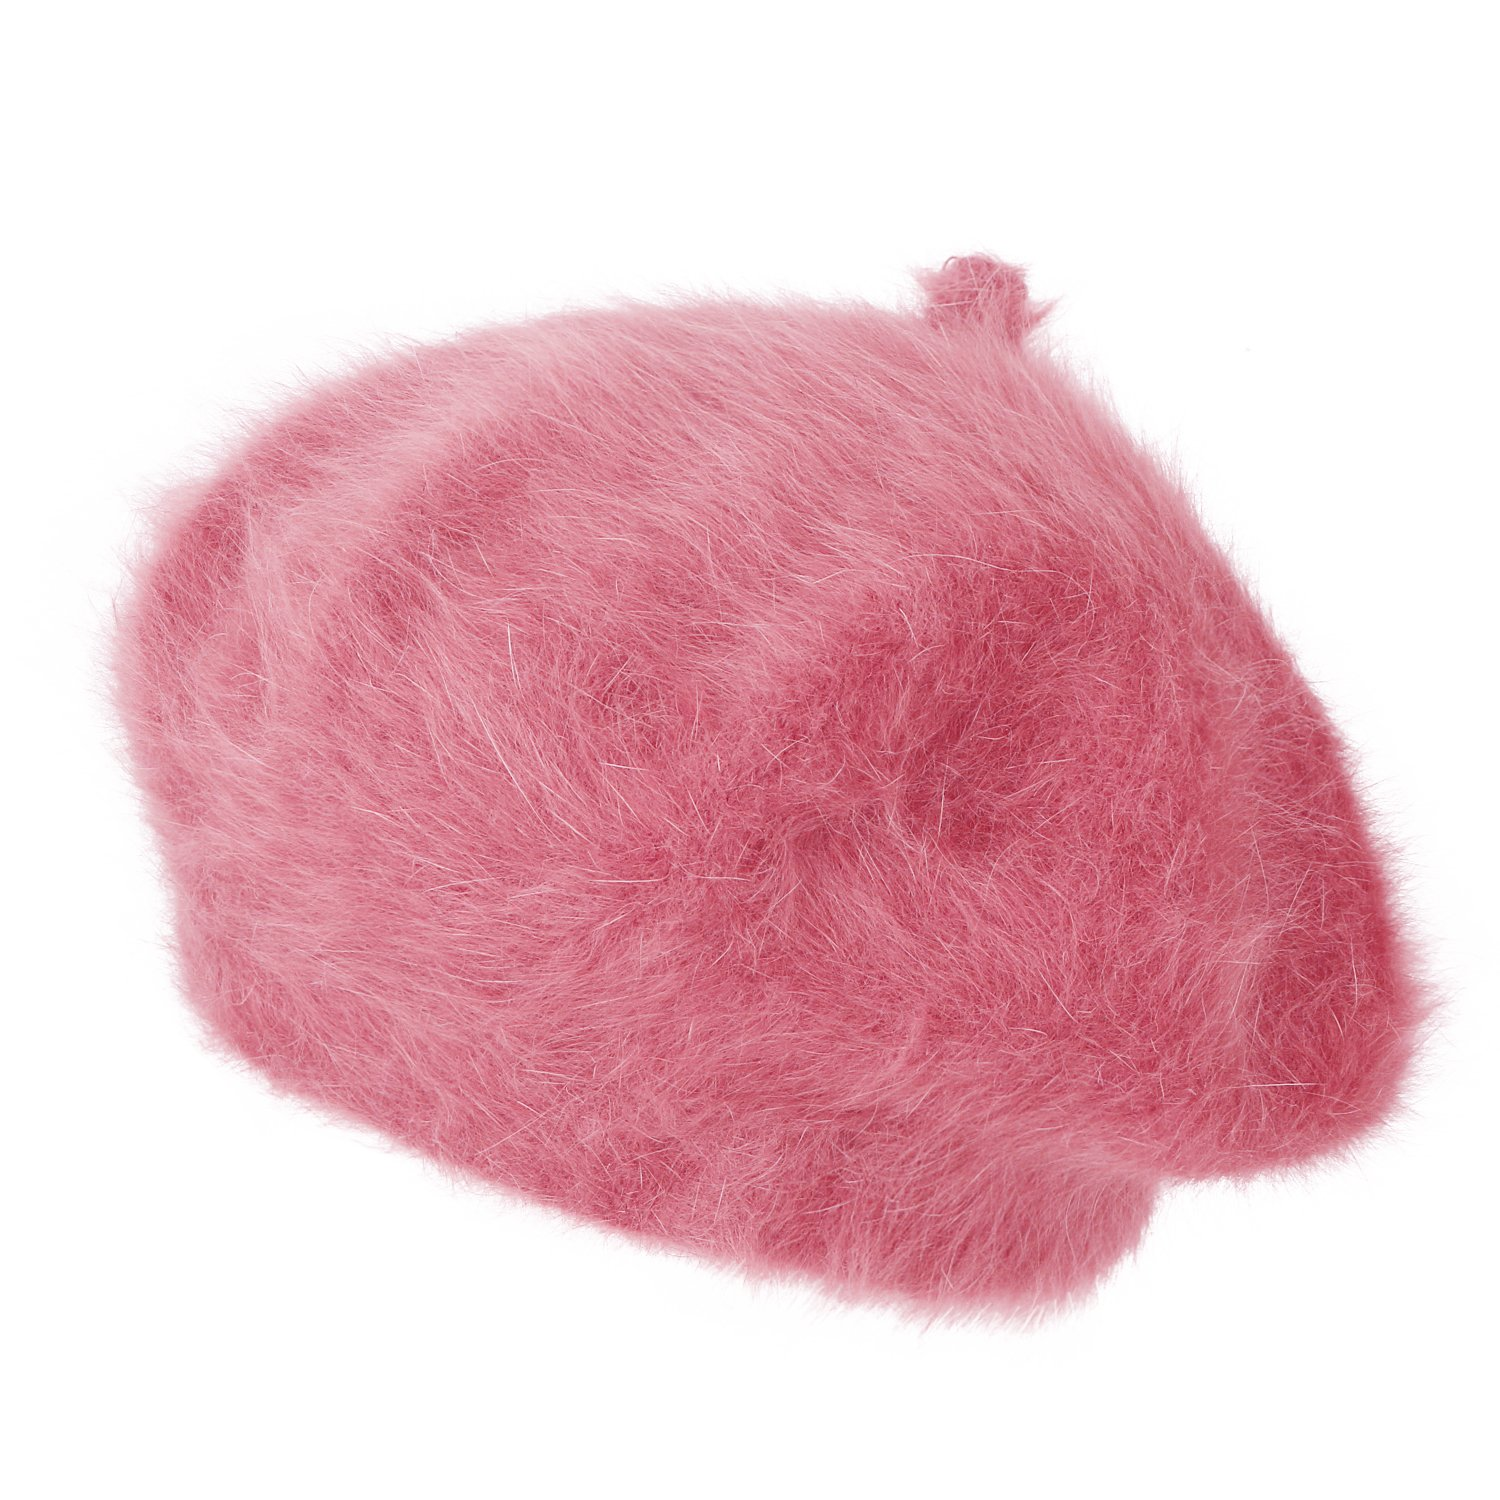 ililily Solid Color Angora French Beret Furry Artist Flat Winter Hat, Pink